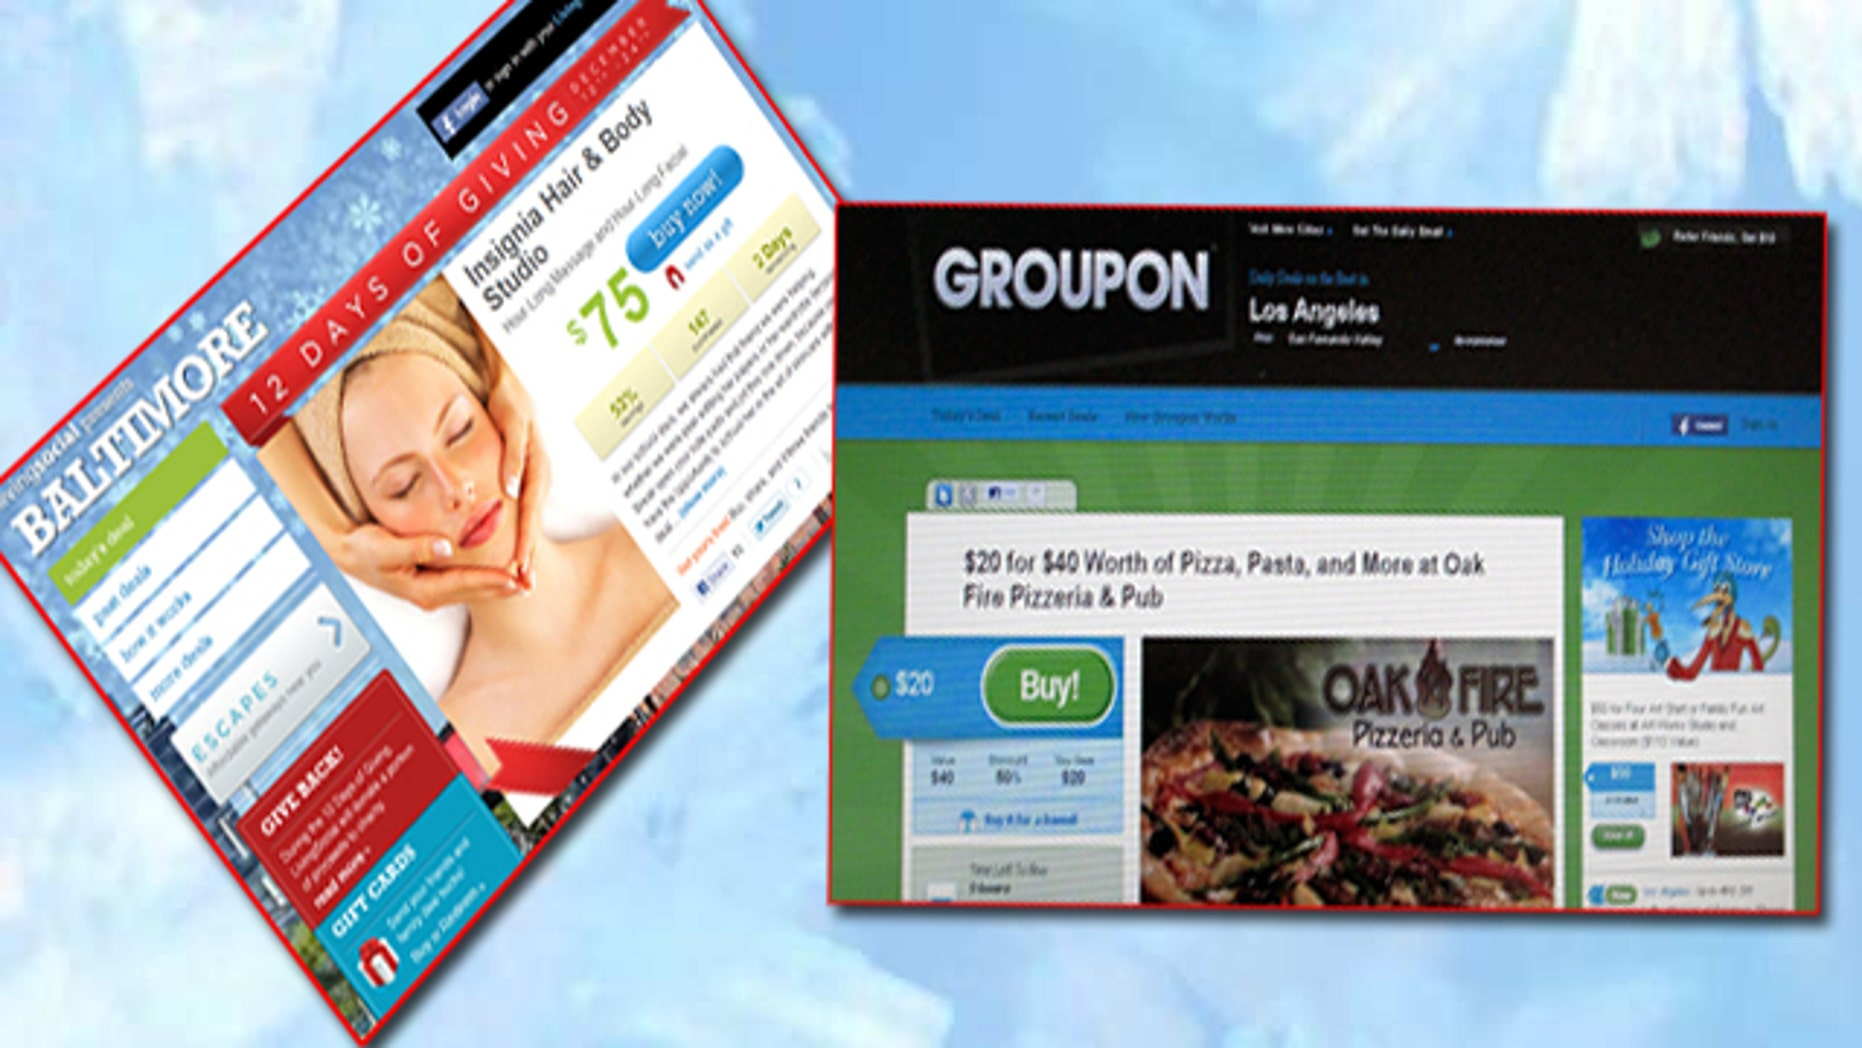 Expedia Groupon Create Travel Deal Web Site  Fox News